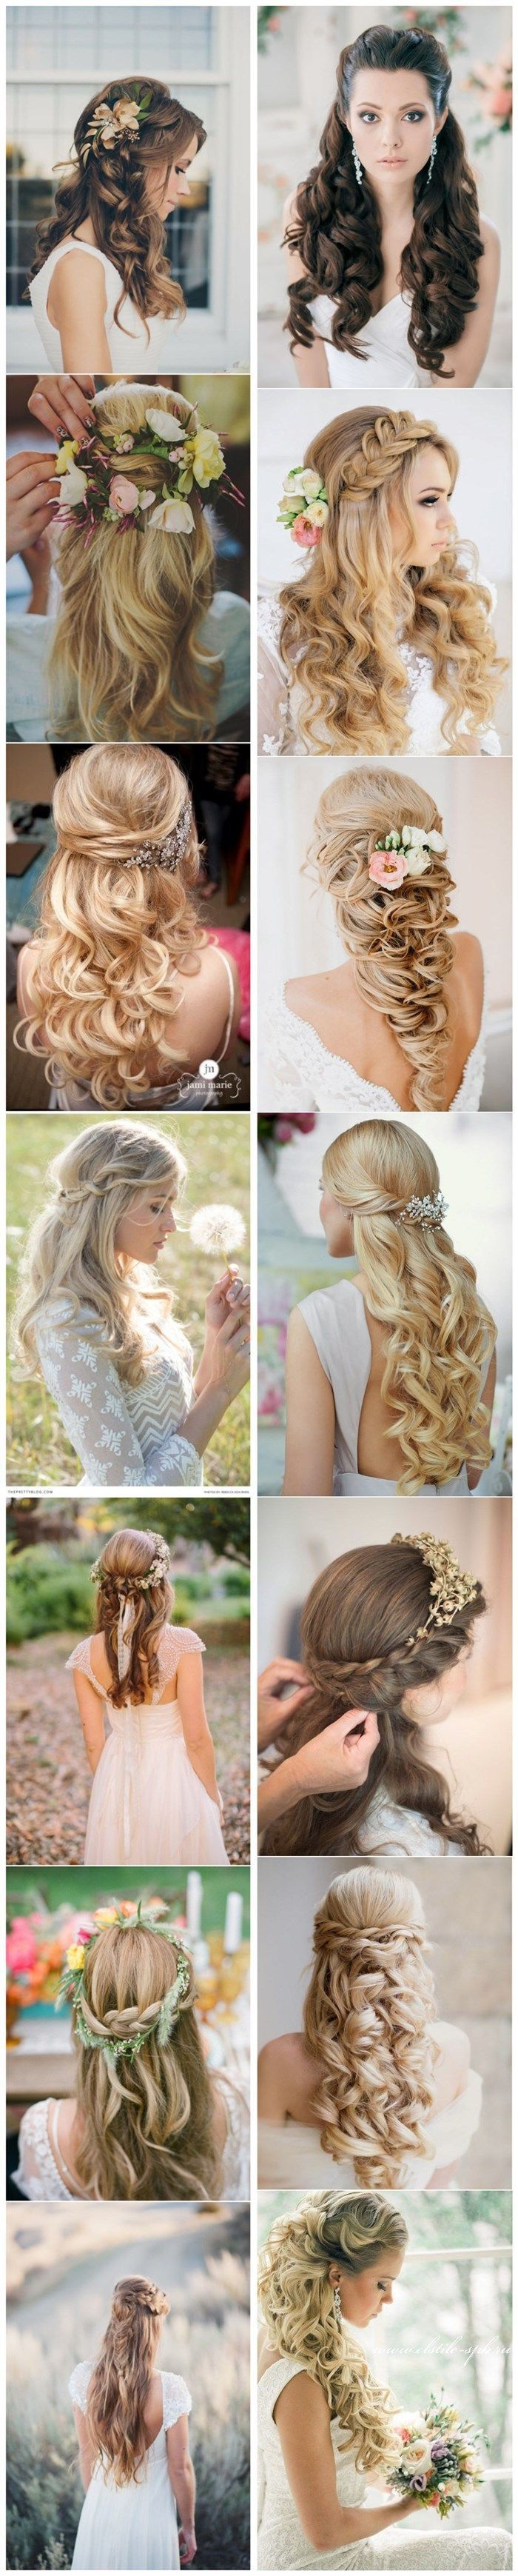 Stunning Half Up Half Down Wedding Hairstyles.